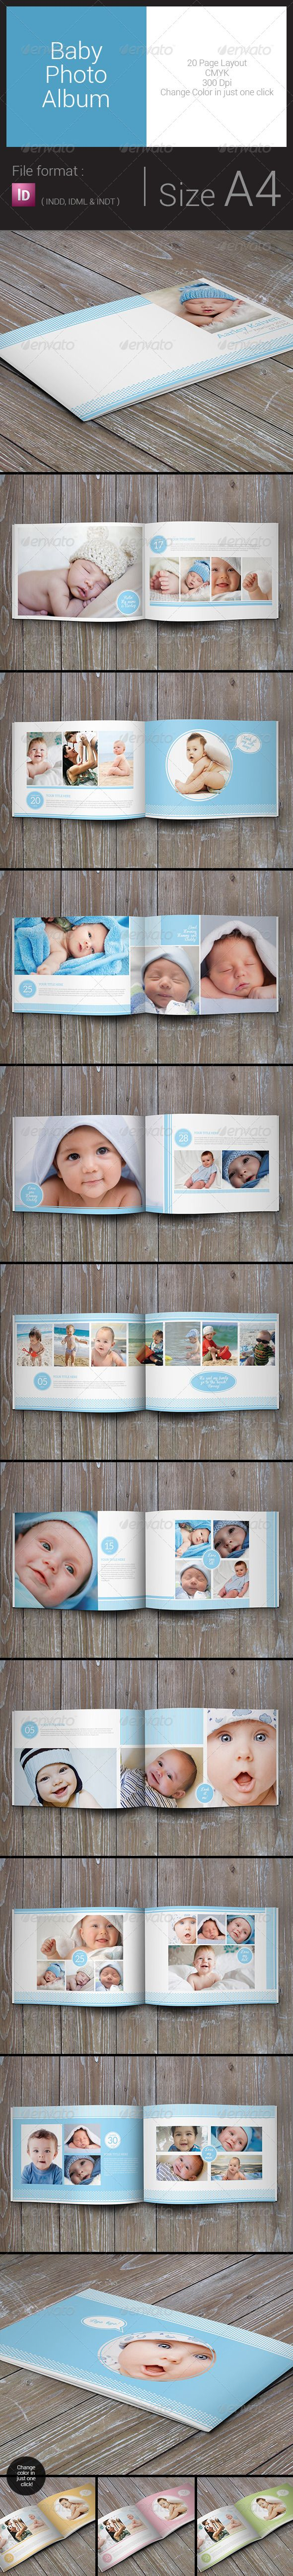 Baby Photo Album - Print Templates Download here: https://graphicriver.net/item/baby-photo-album/7988762?ref=classicdesignp